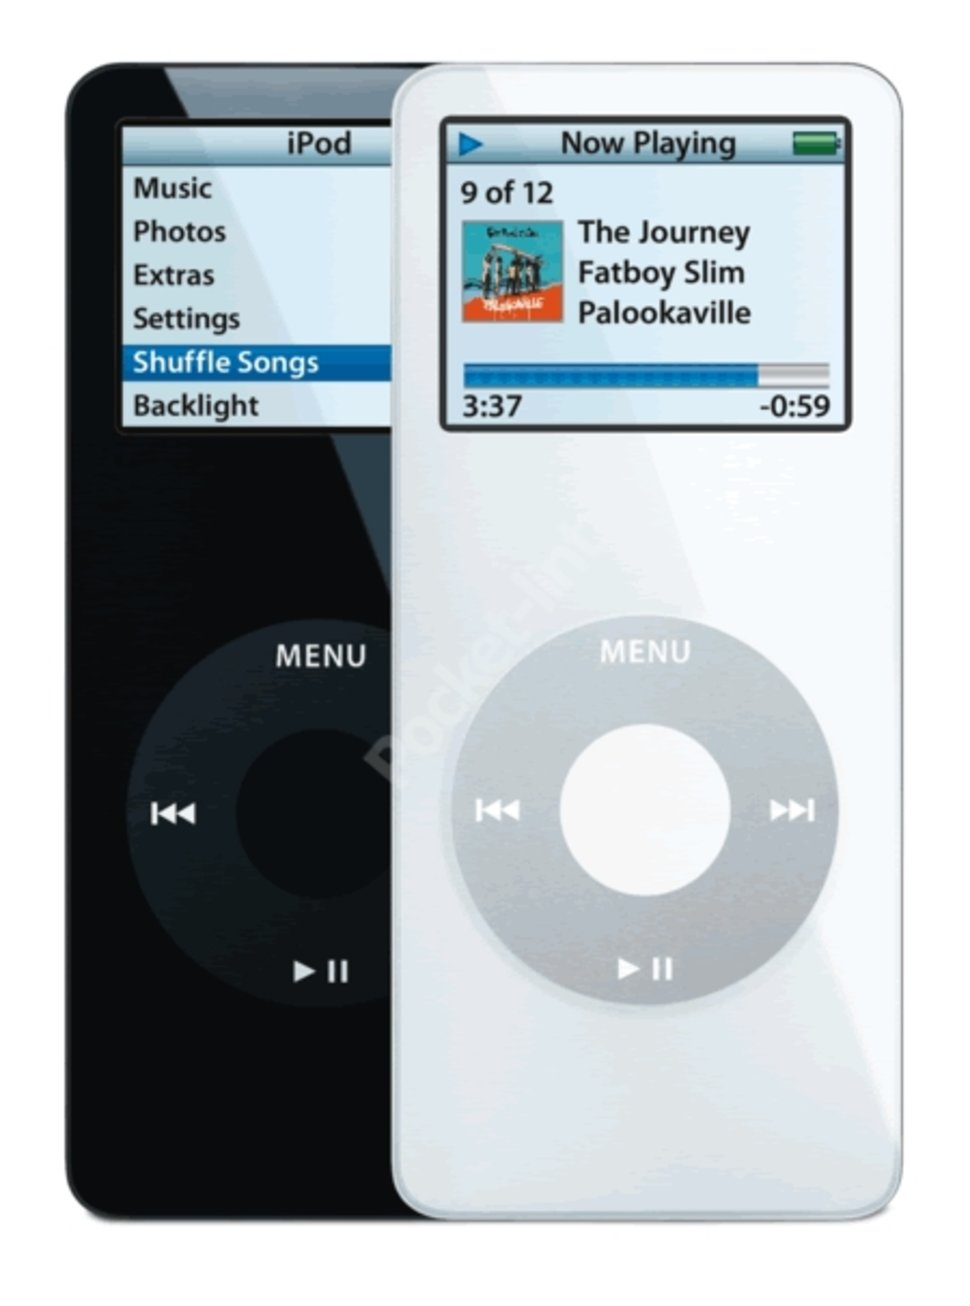 apple ipod nano 2005 review image 1